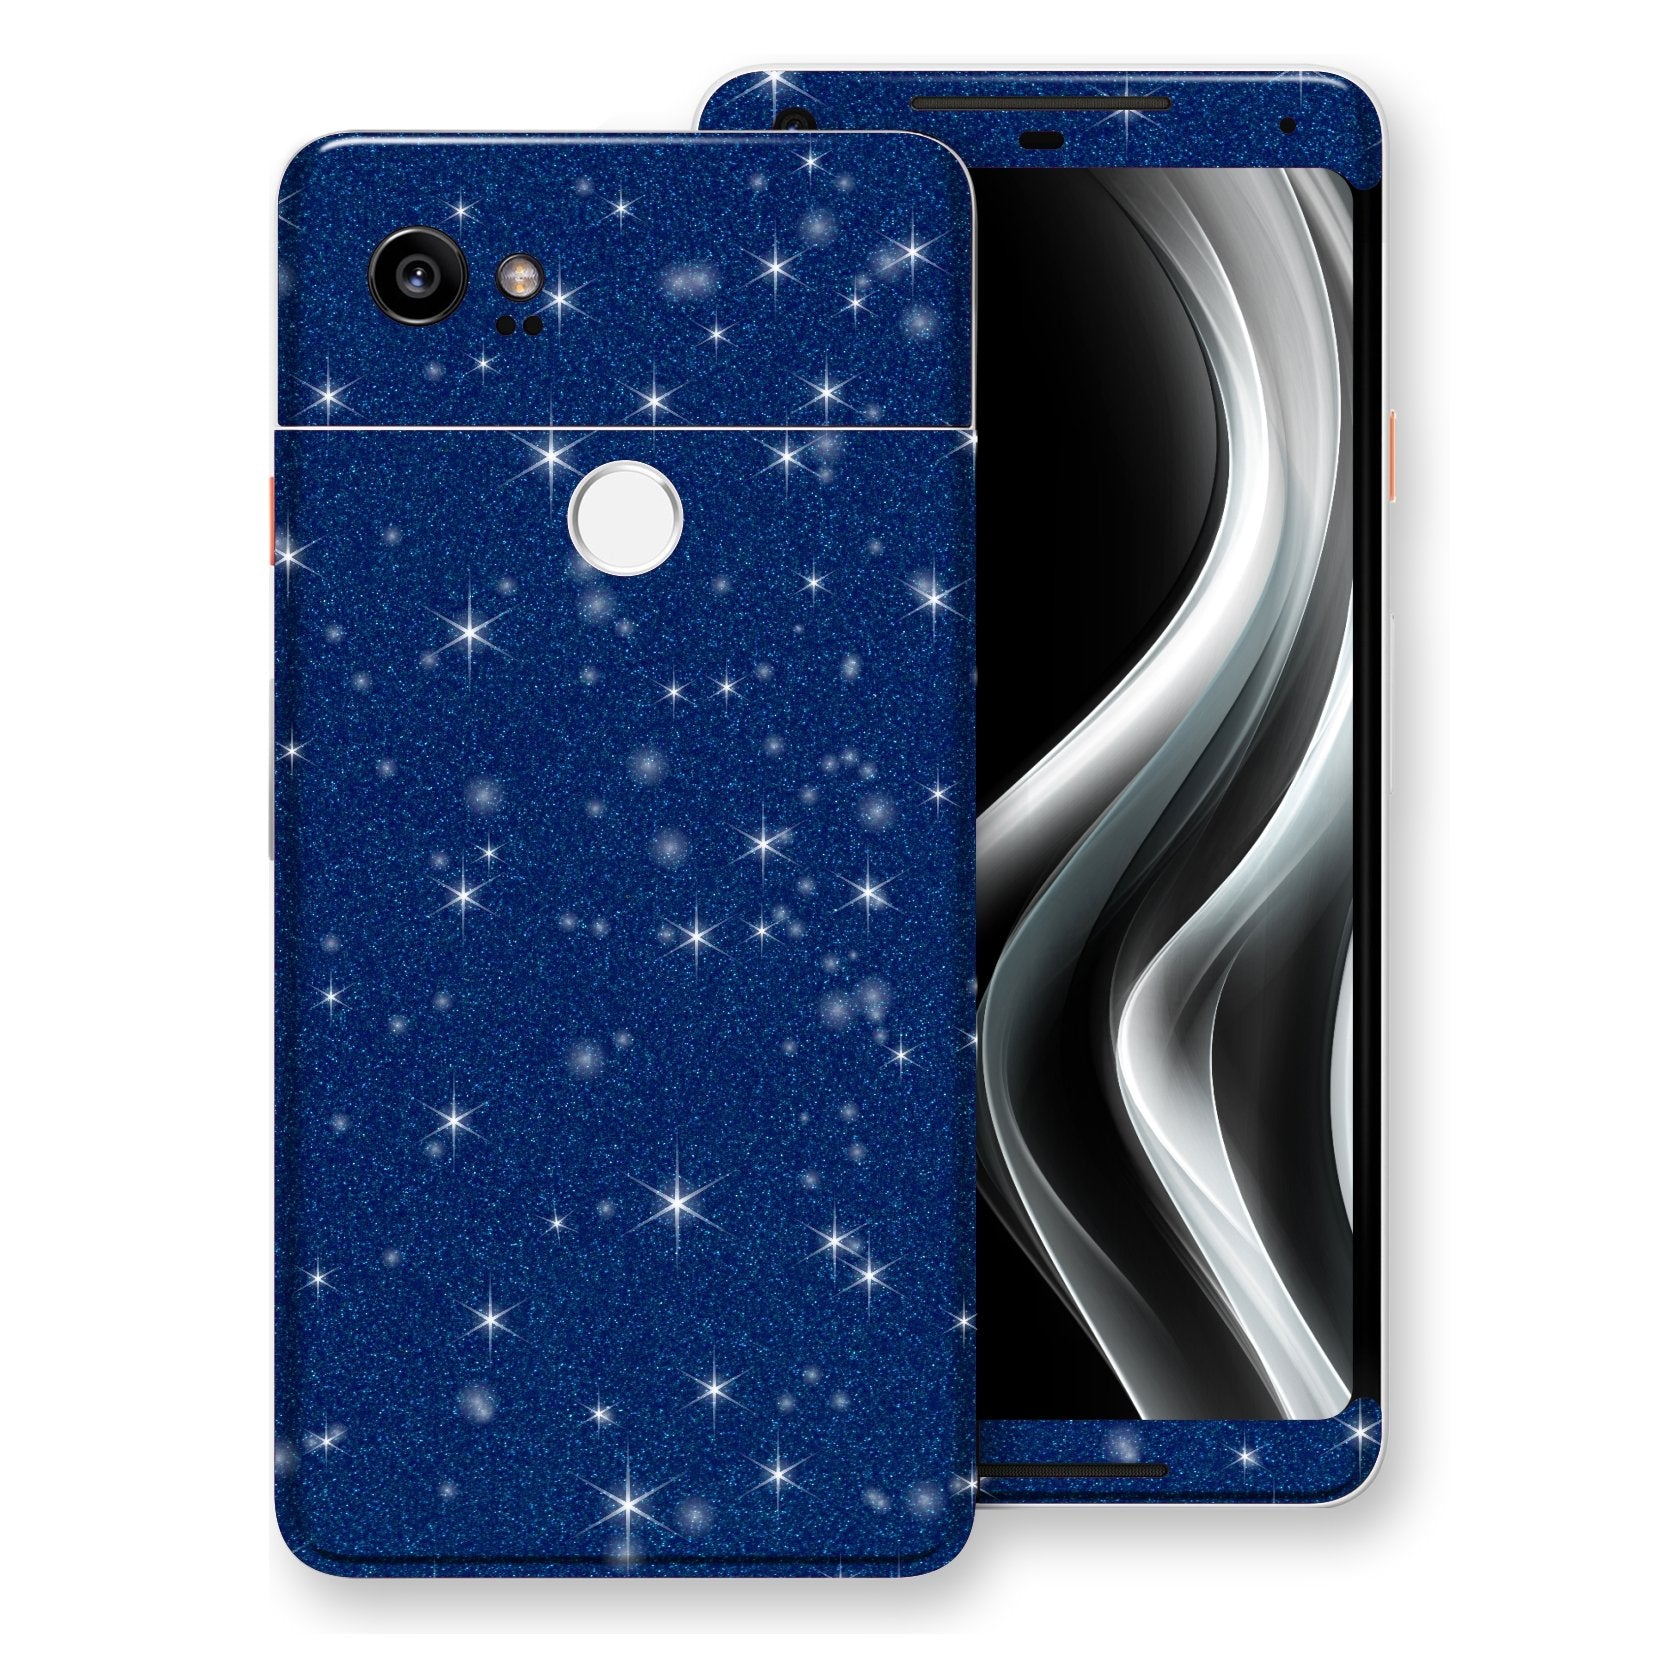 Google Pixel 2 XL Diamond Blue Shimmering, Sparkling, Glitter Skin, Decal, Wrap, Protector, Cover by EasySkinz | EasySkinz.com